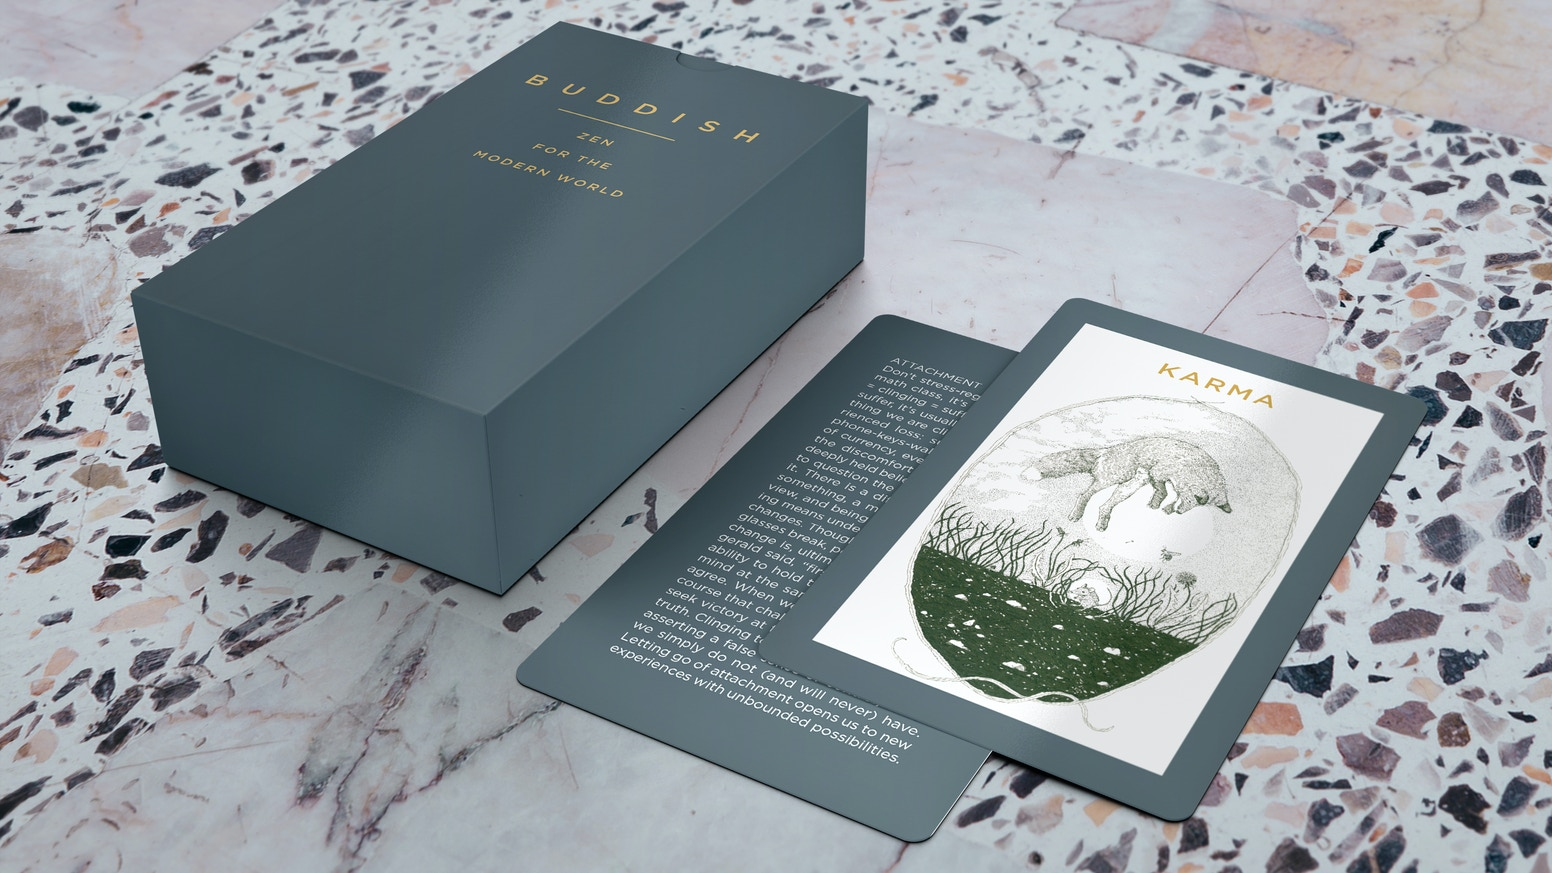 A mindfulness deck of cards inspired by Buddhist philosophy (it's Budd-ish)